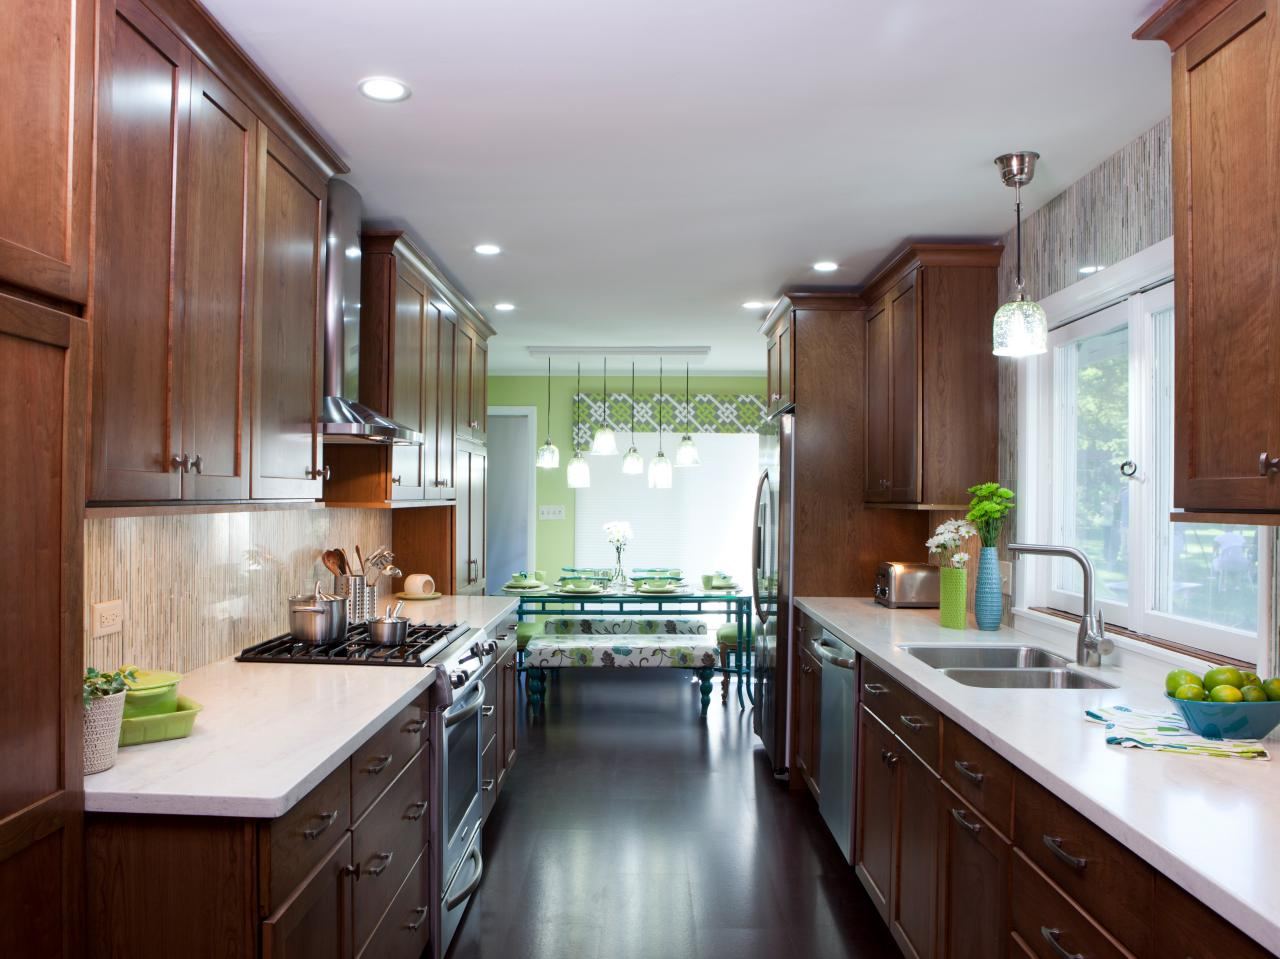 Galley Kitchen Design Ideas another option for a small kitchen areai am obsessed with a kitchen remodel Small Kitchen Layouts Pictures Ideas Tips From Hgtv Hgtv